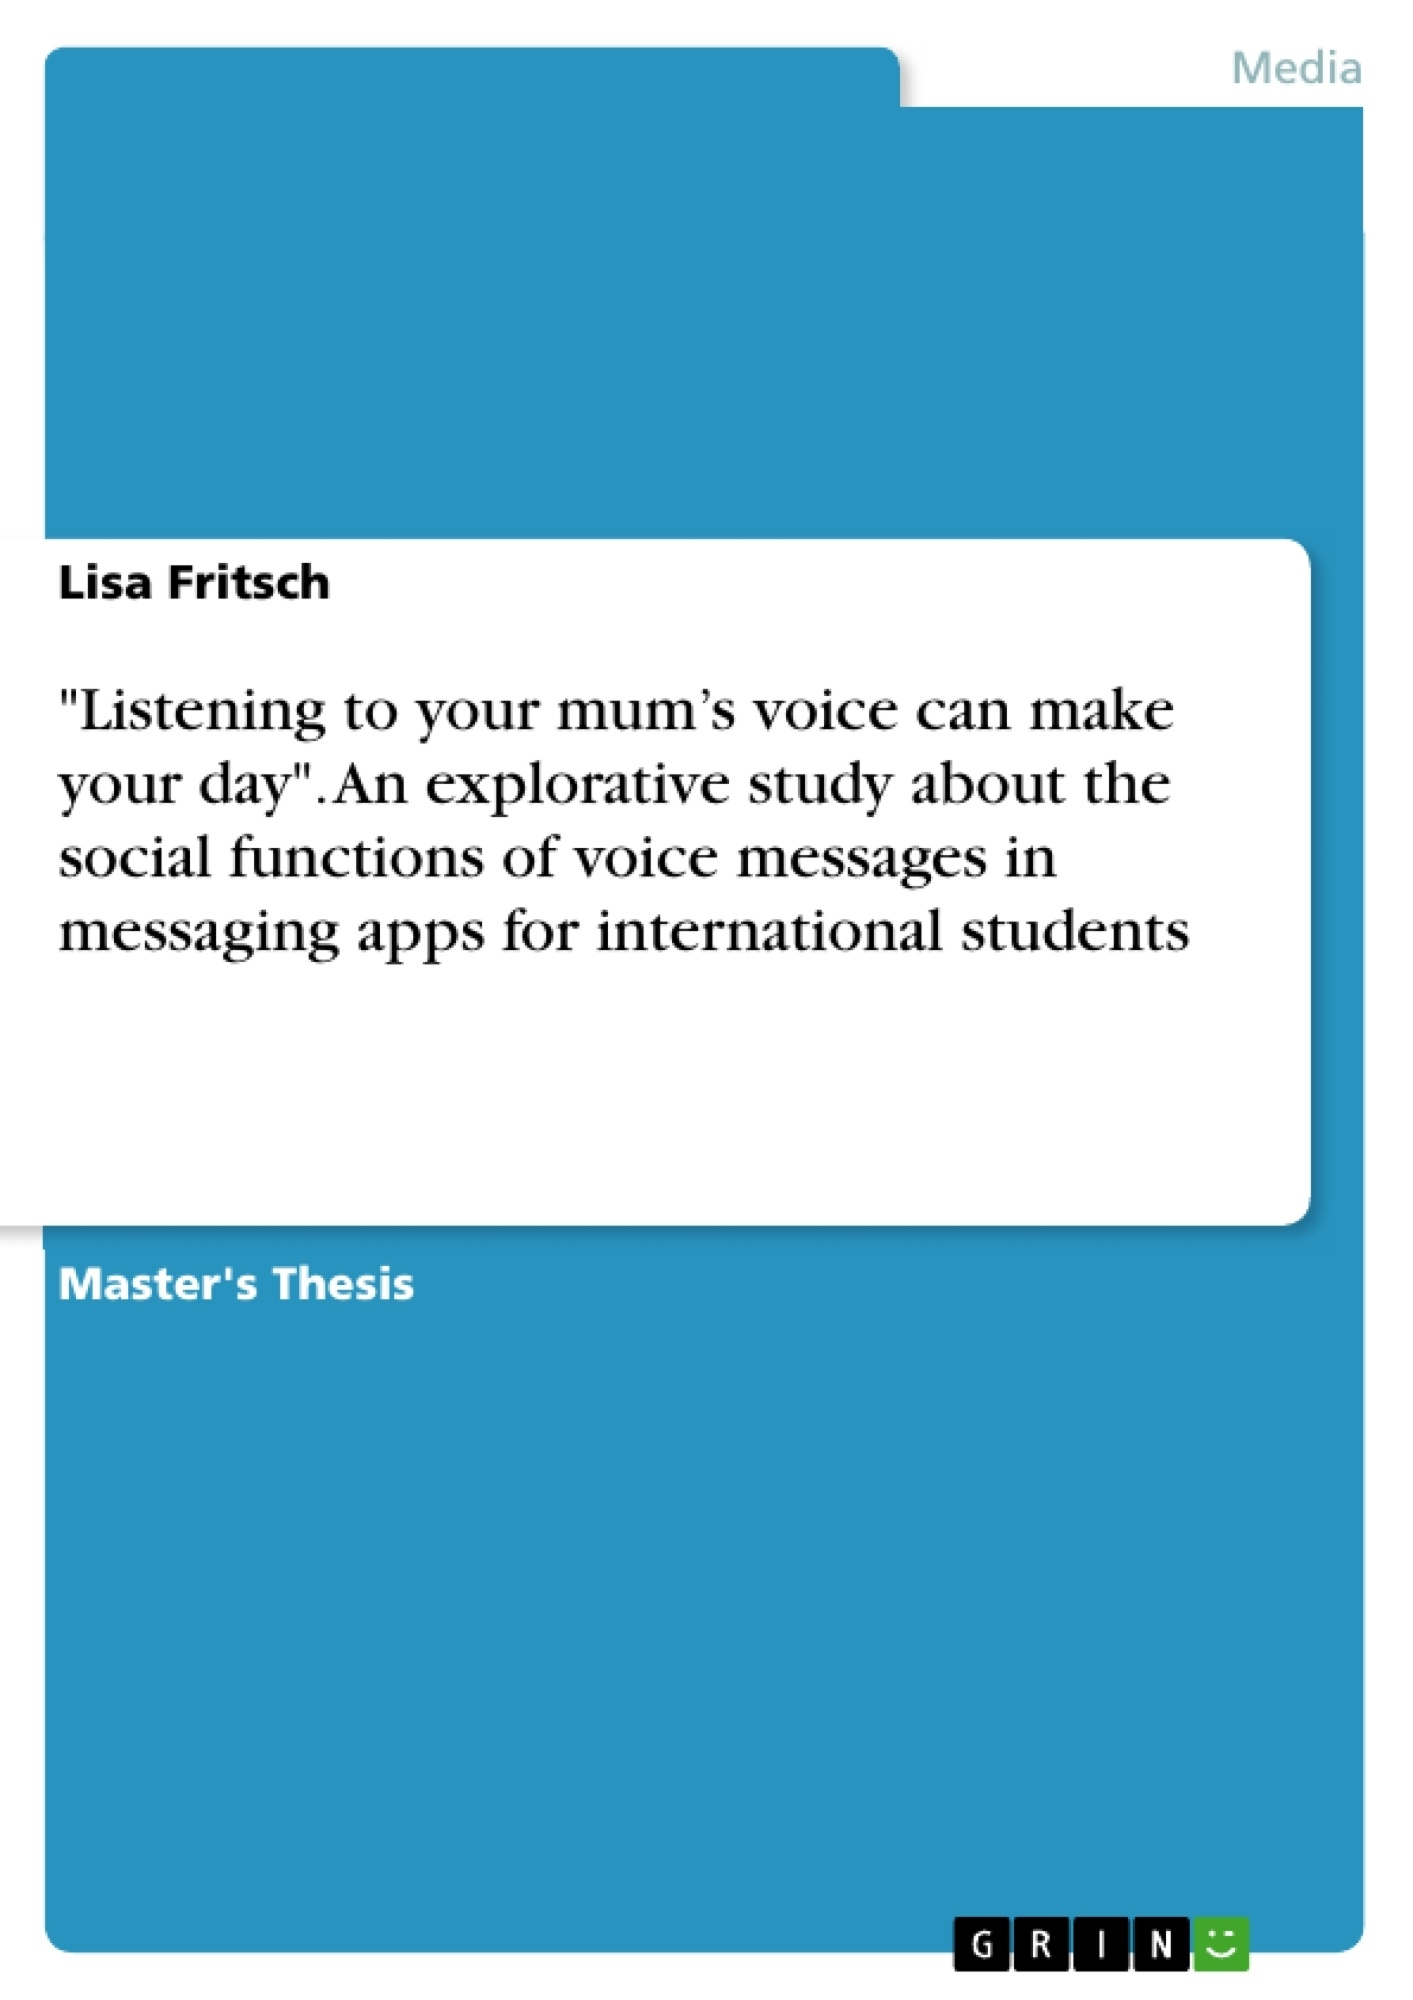 """Title: """"Listening to your mum's voice can make your day"""". An explorative study about the social functions of voice messages in messaging apps for international students"""